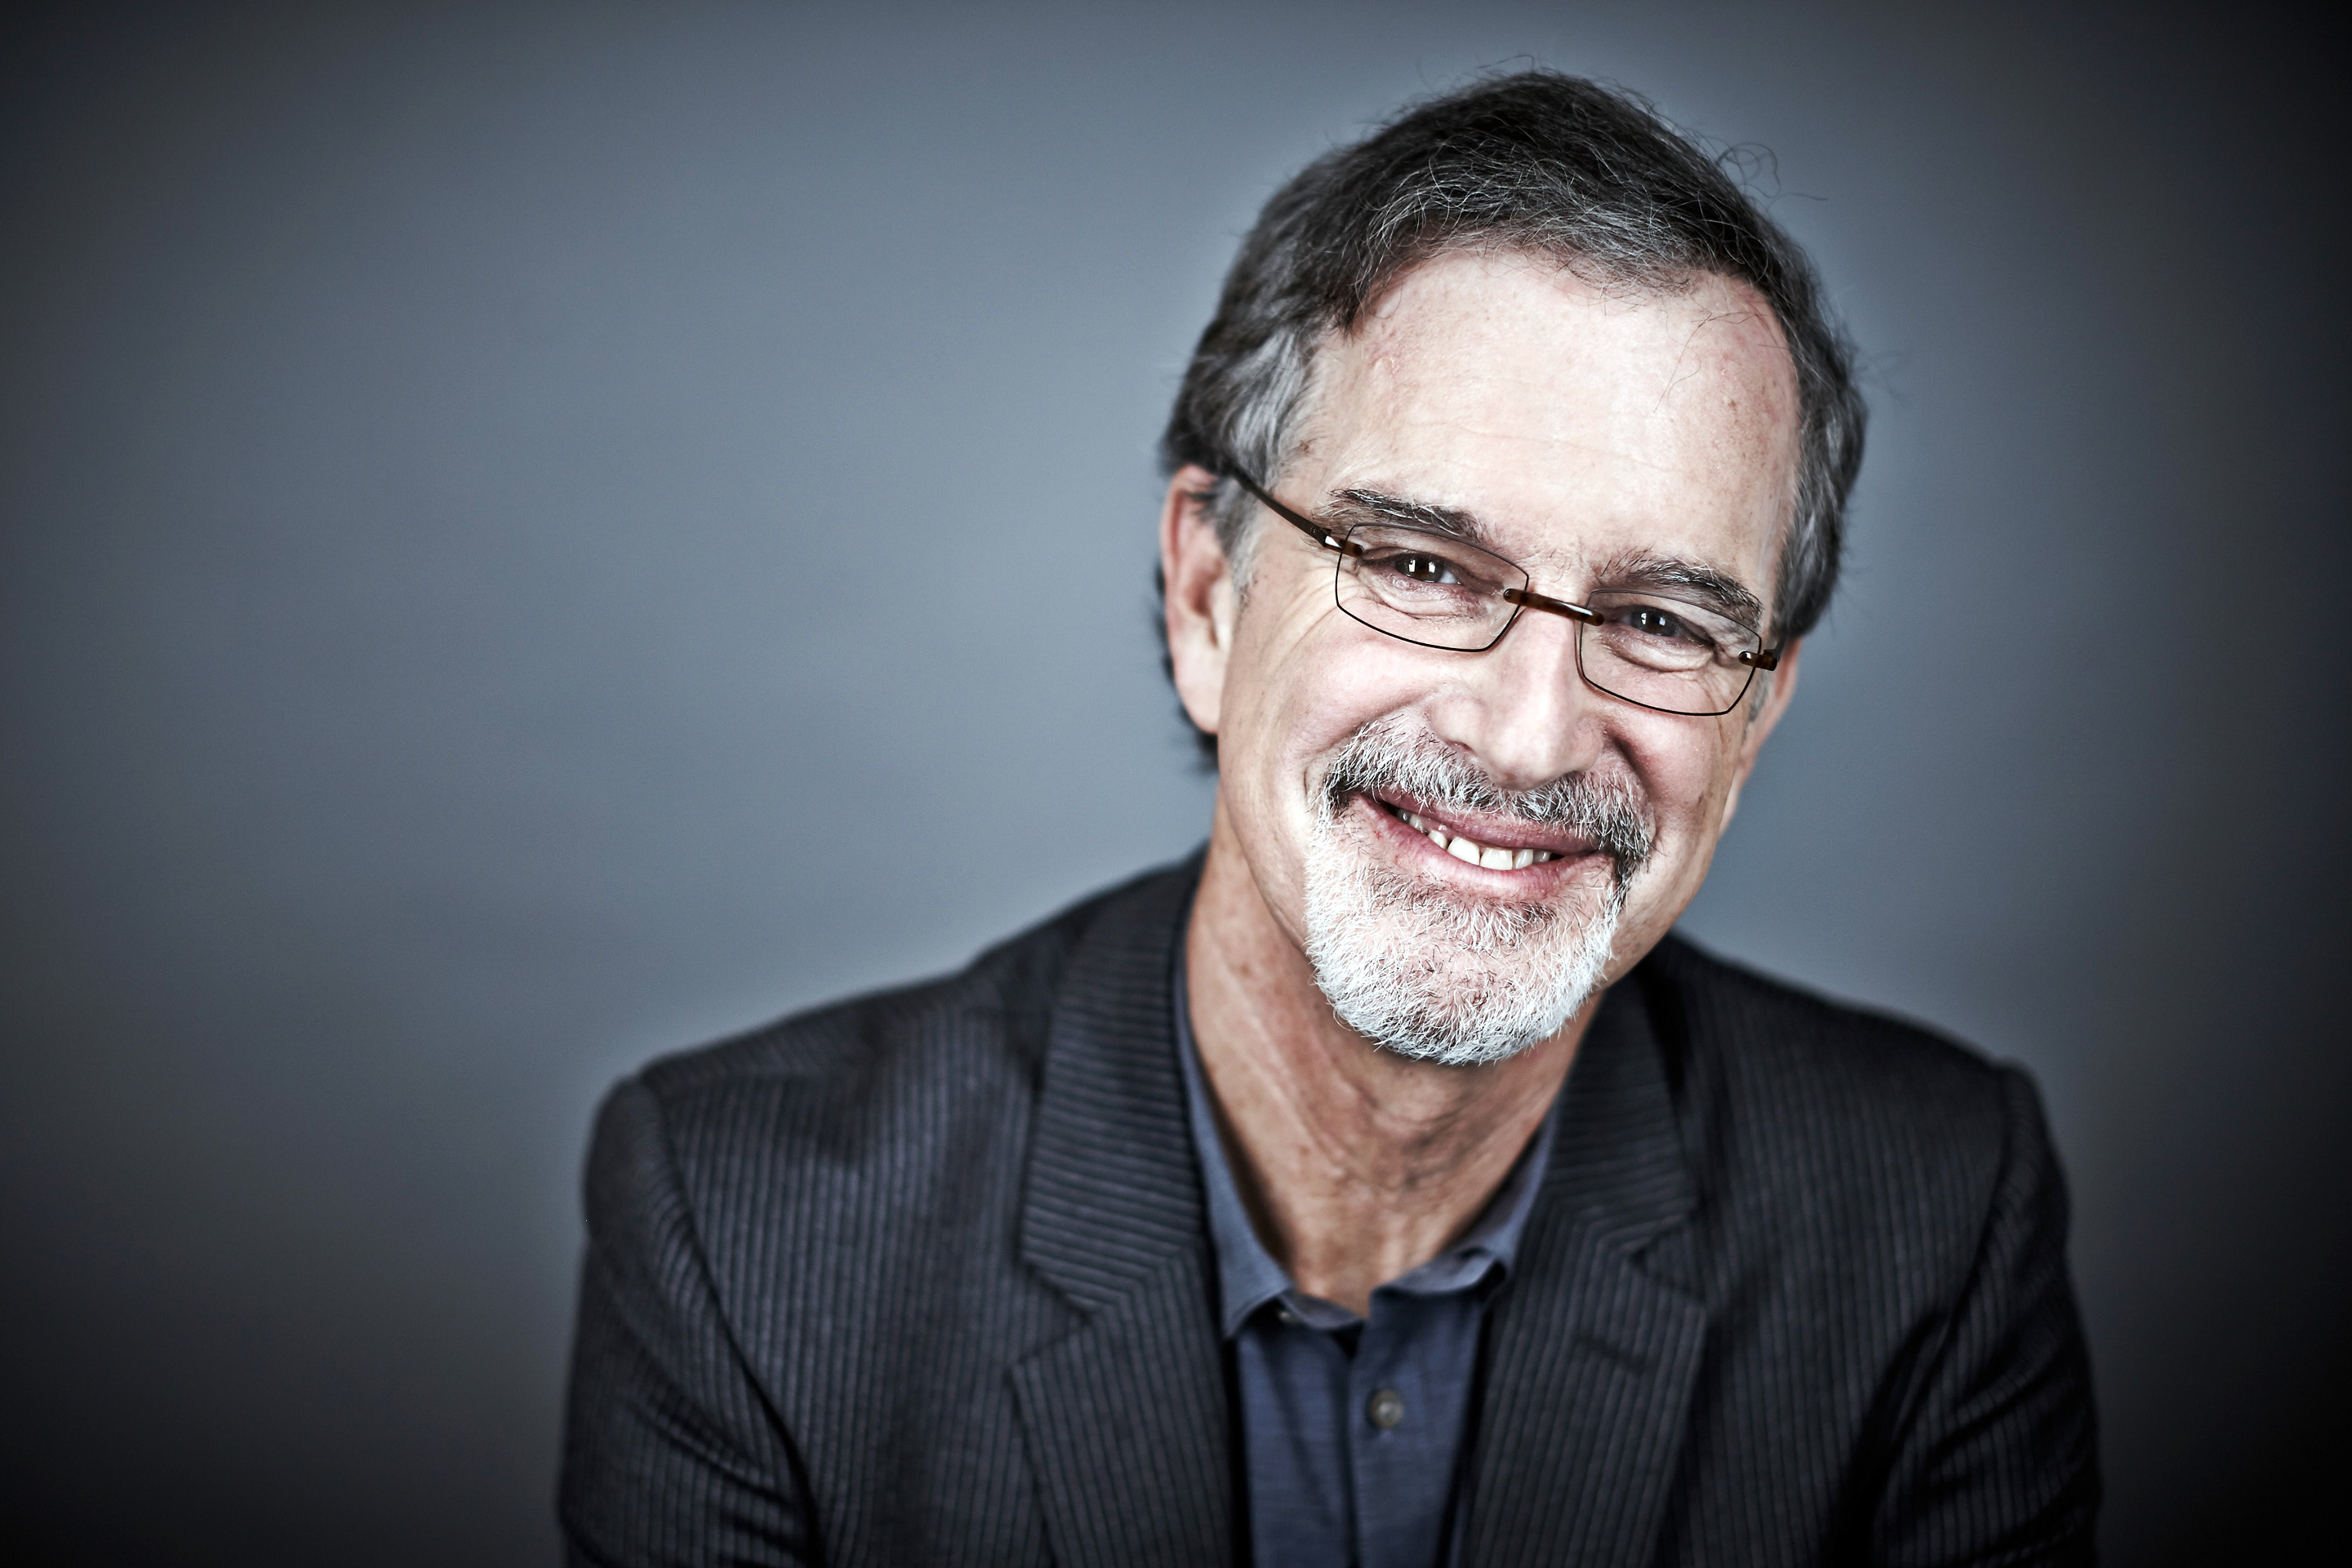 garry trudeau on his new book sad doonesbury in the time of